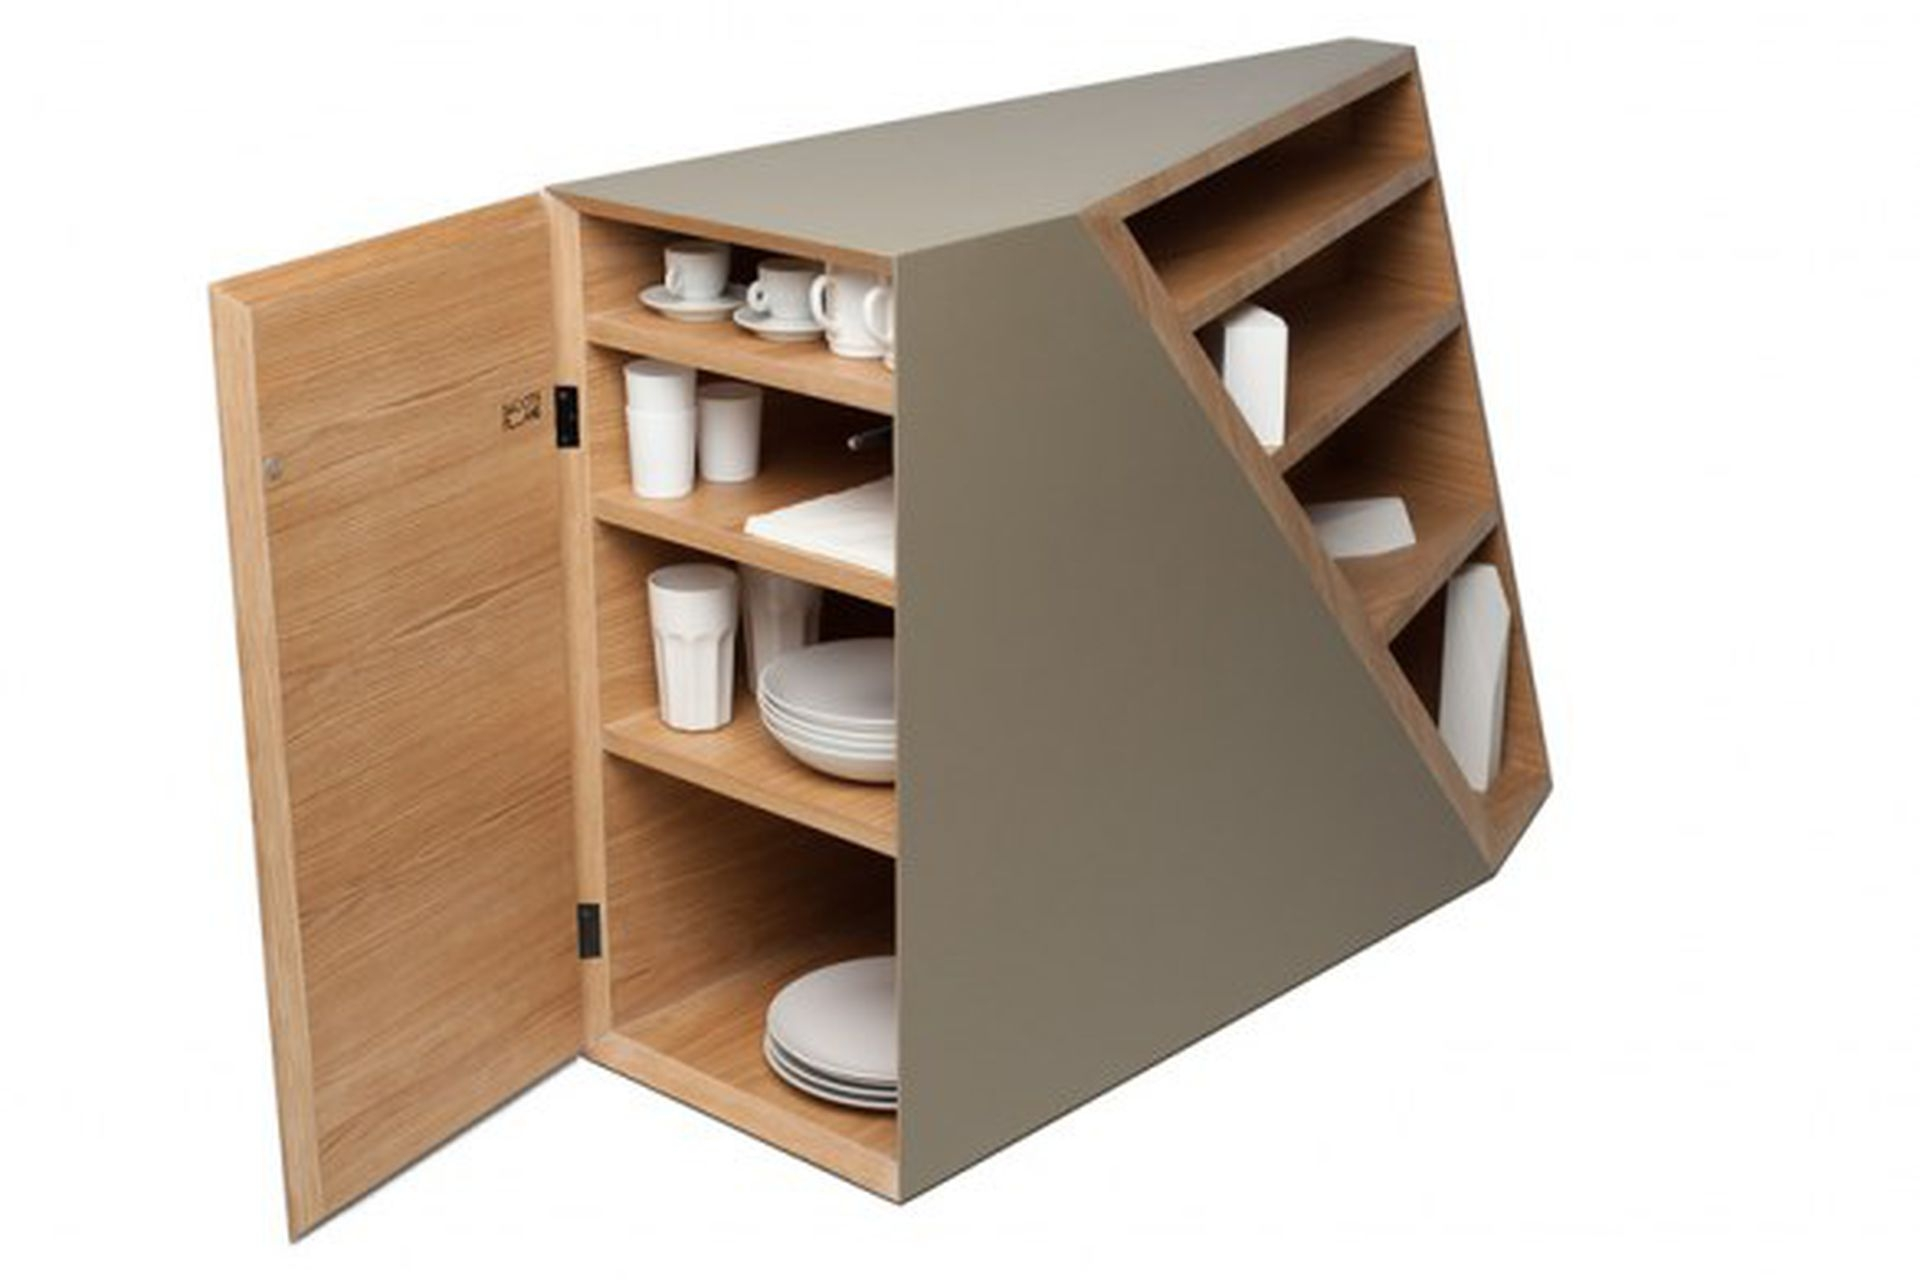 Charmant Hidden Storage In Cabinet Of Unique Furniture Collection With Perfect